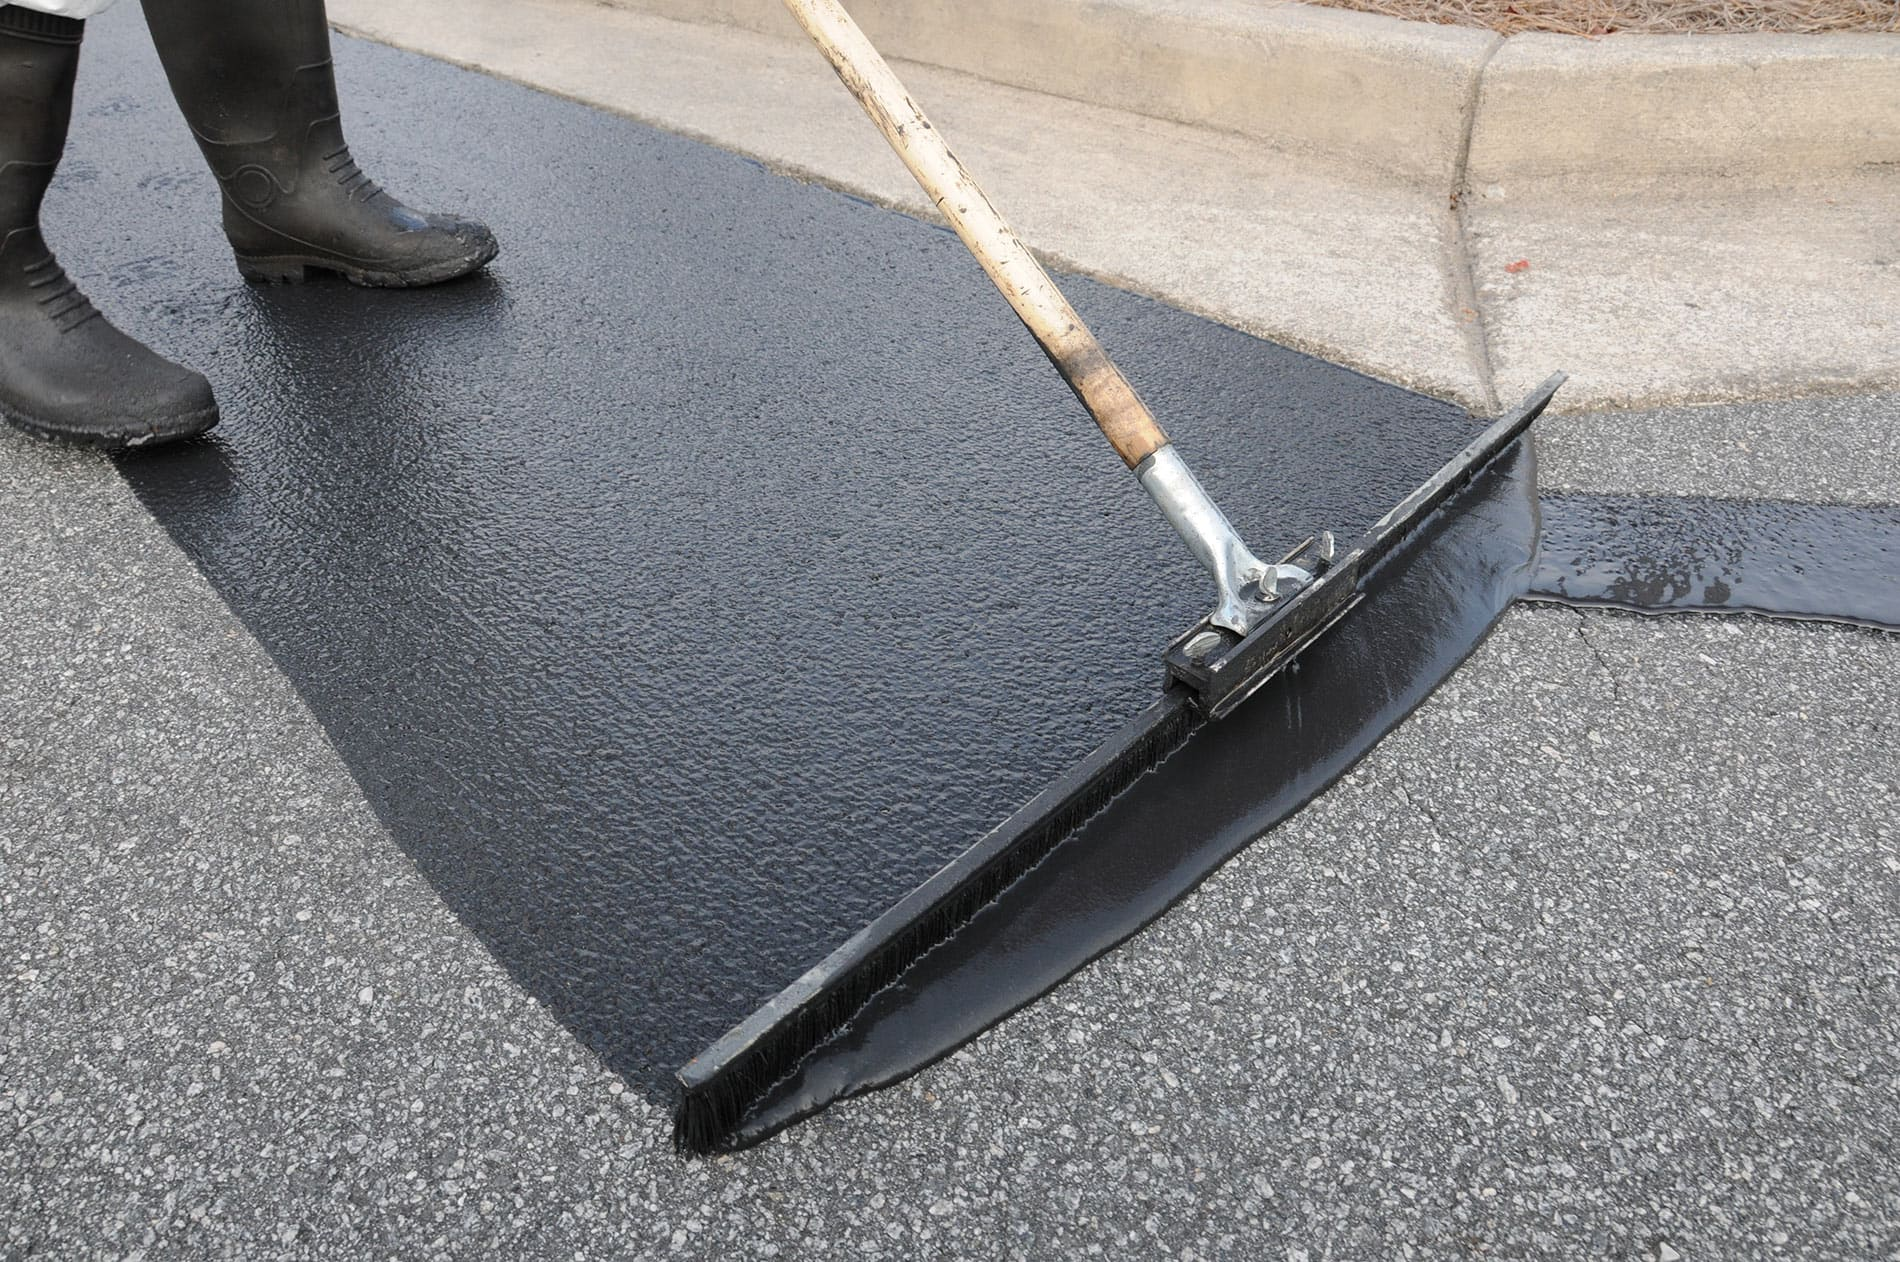 Eastern Paving CT sealcoating services